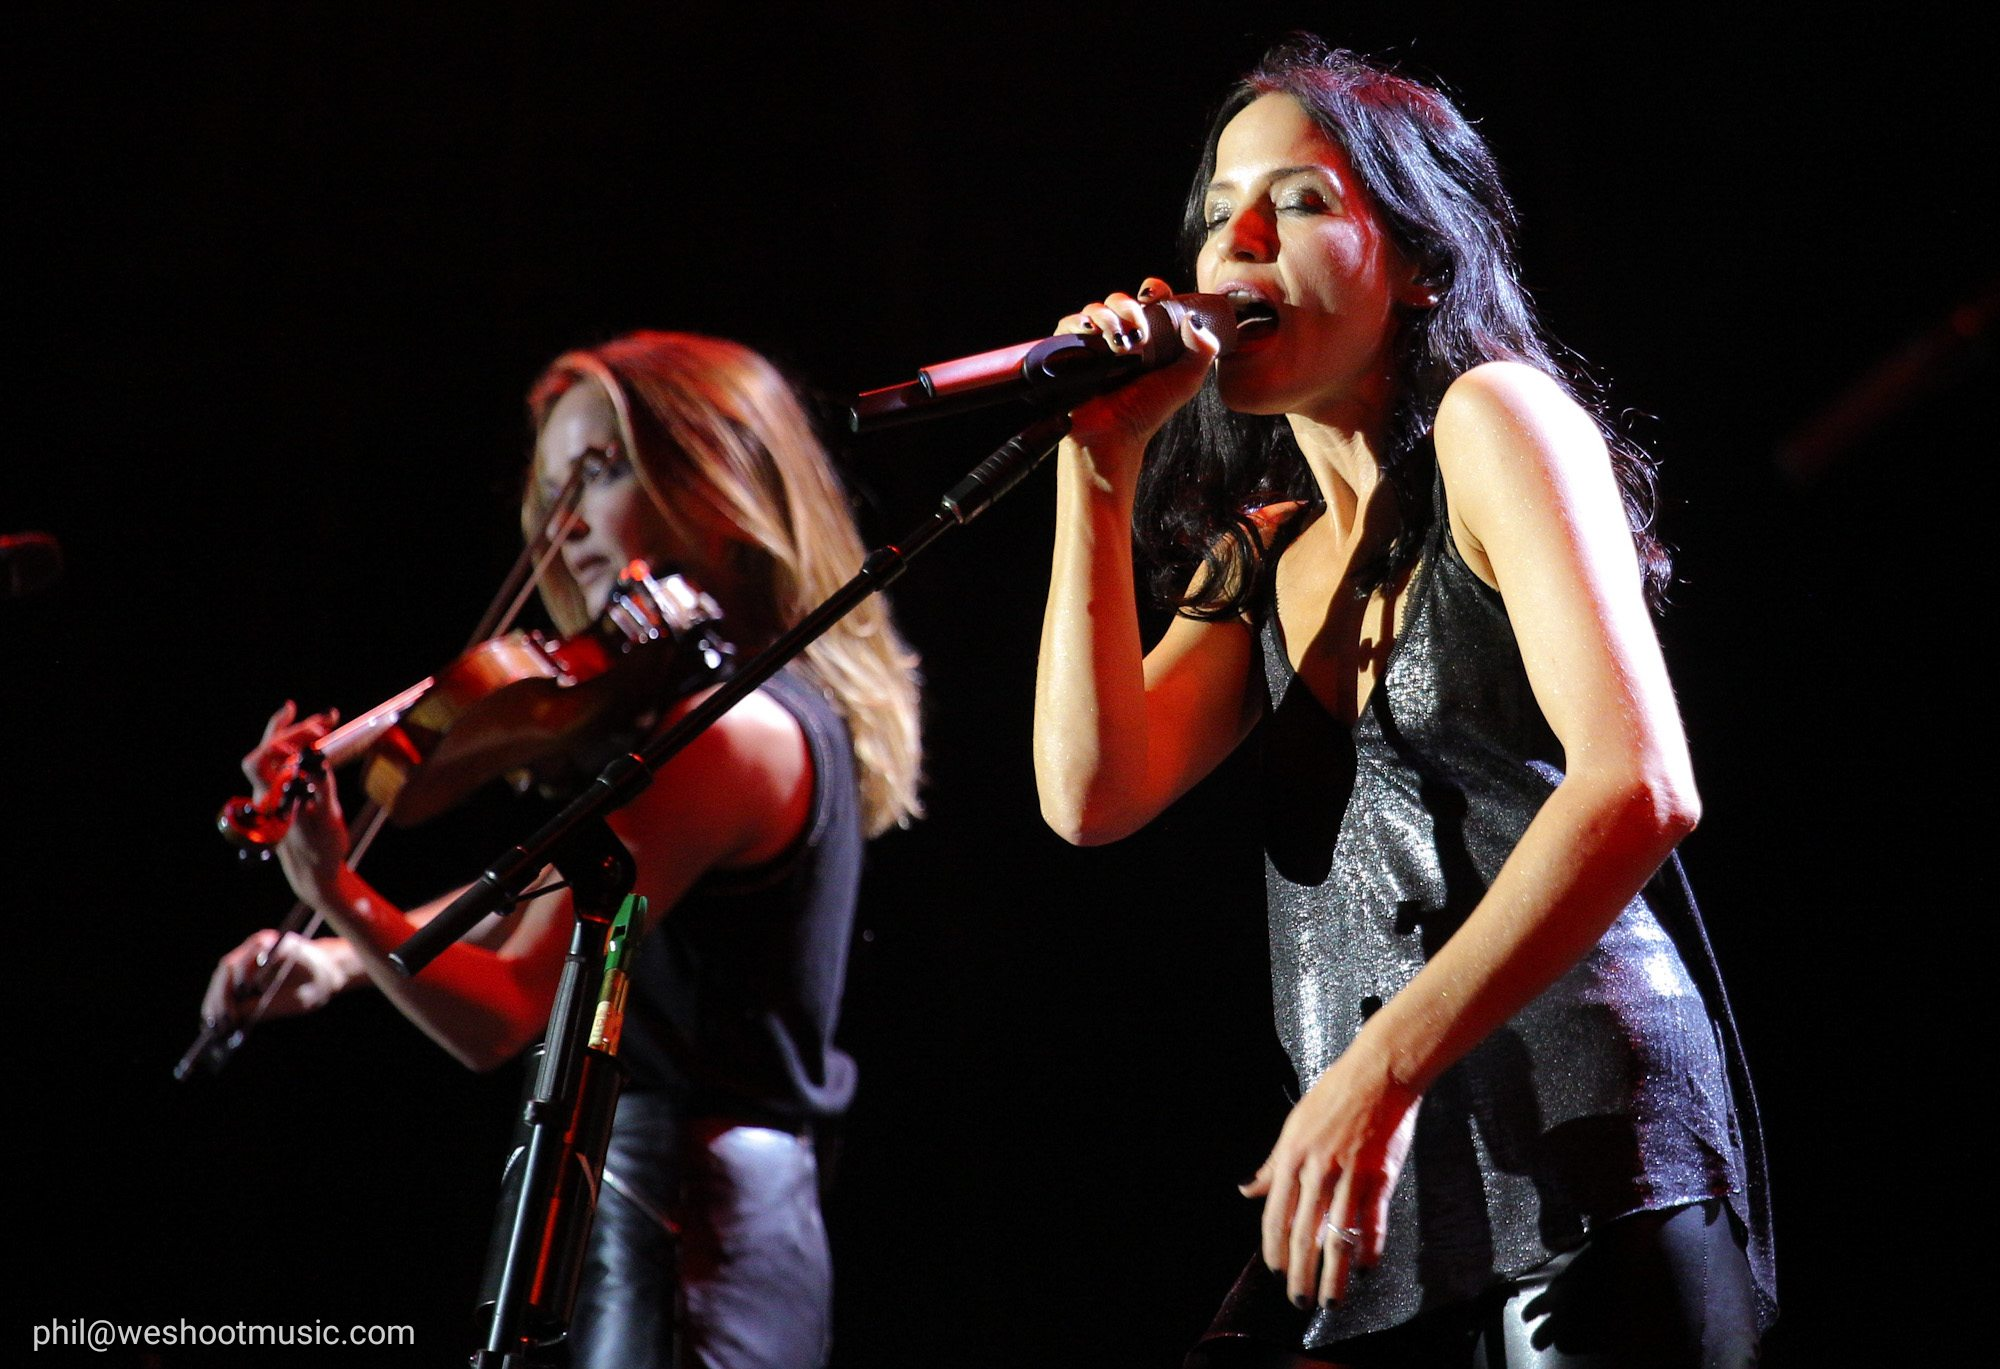 Throwback – The Corrs at Manchester Arena in 2016